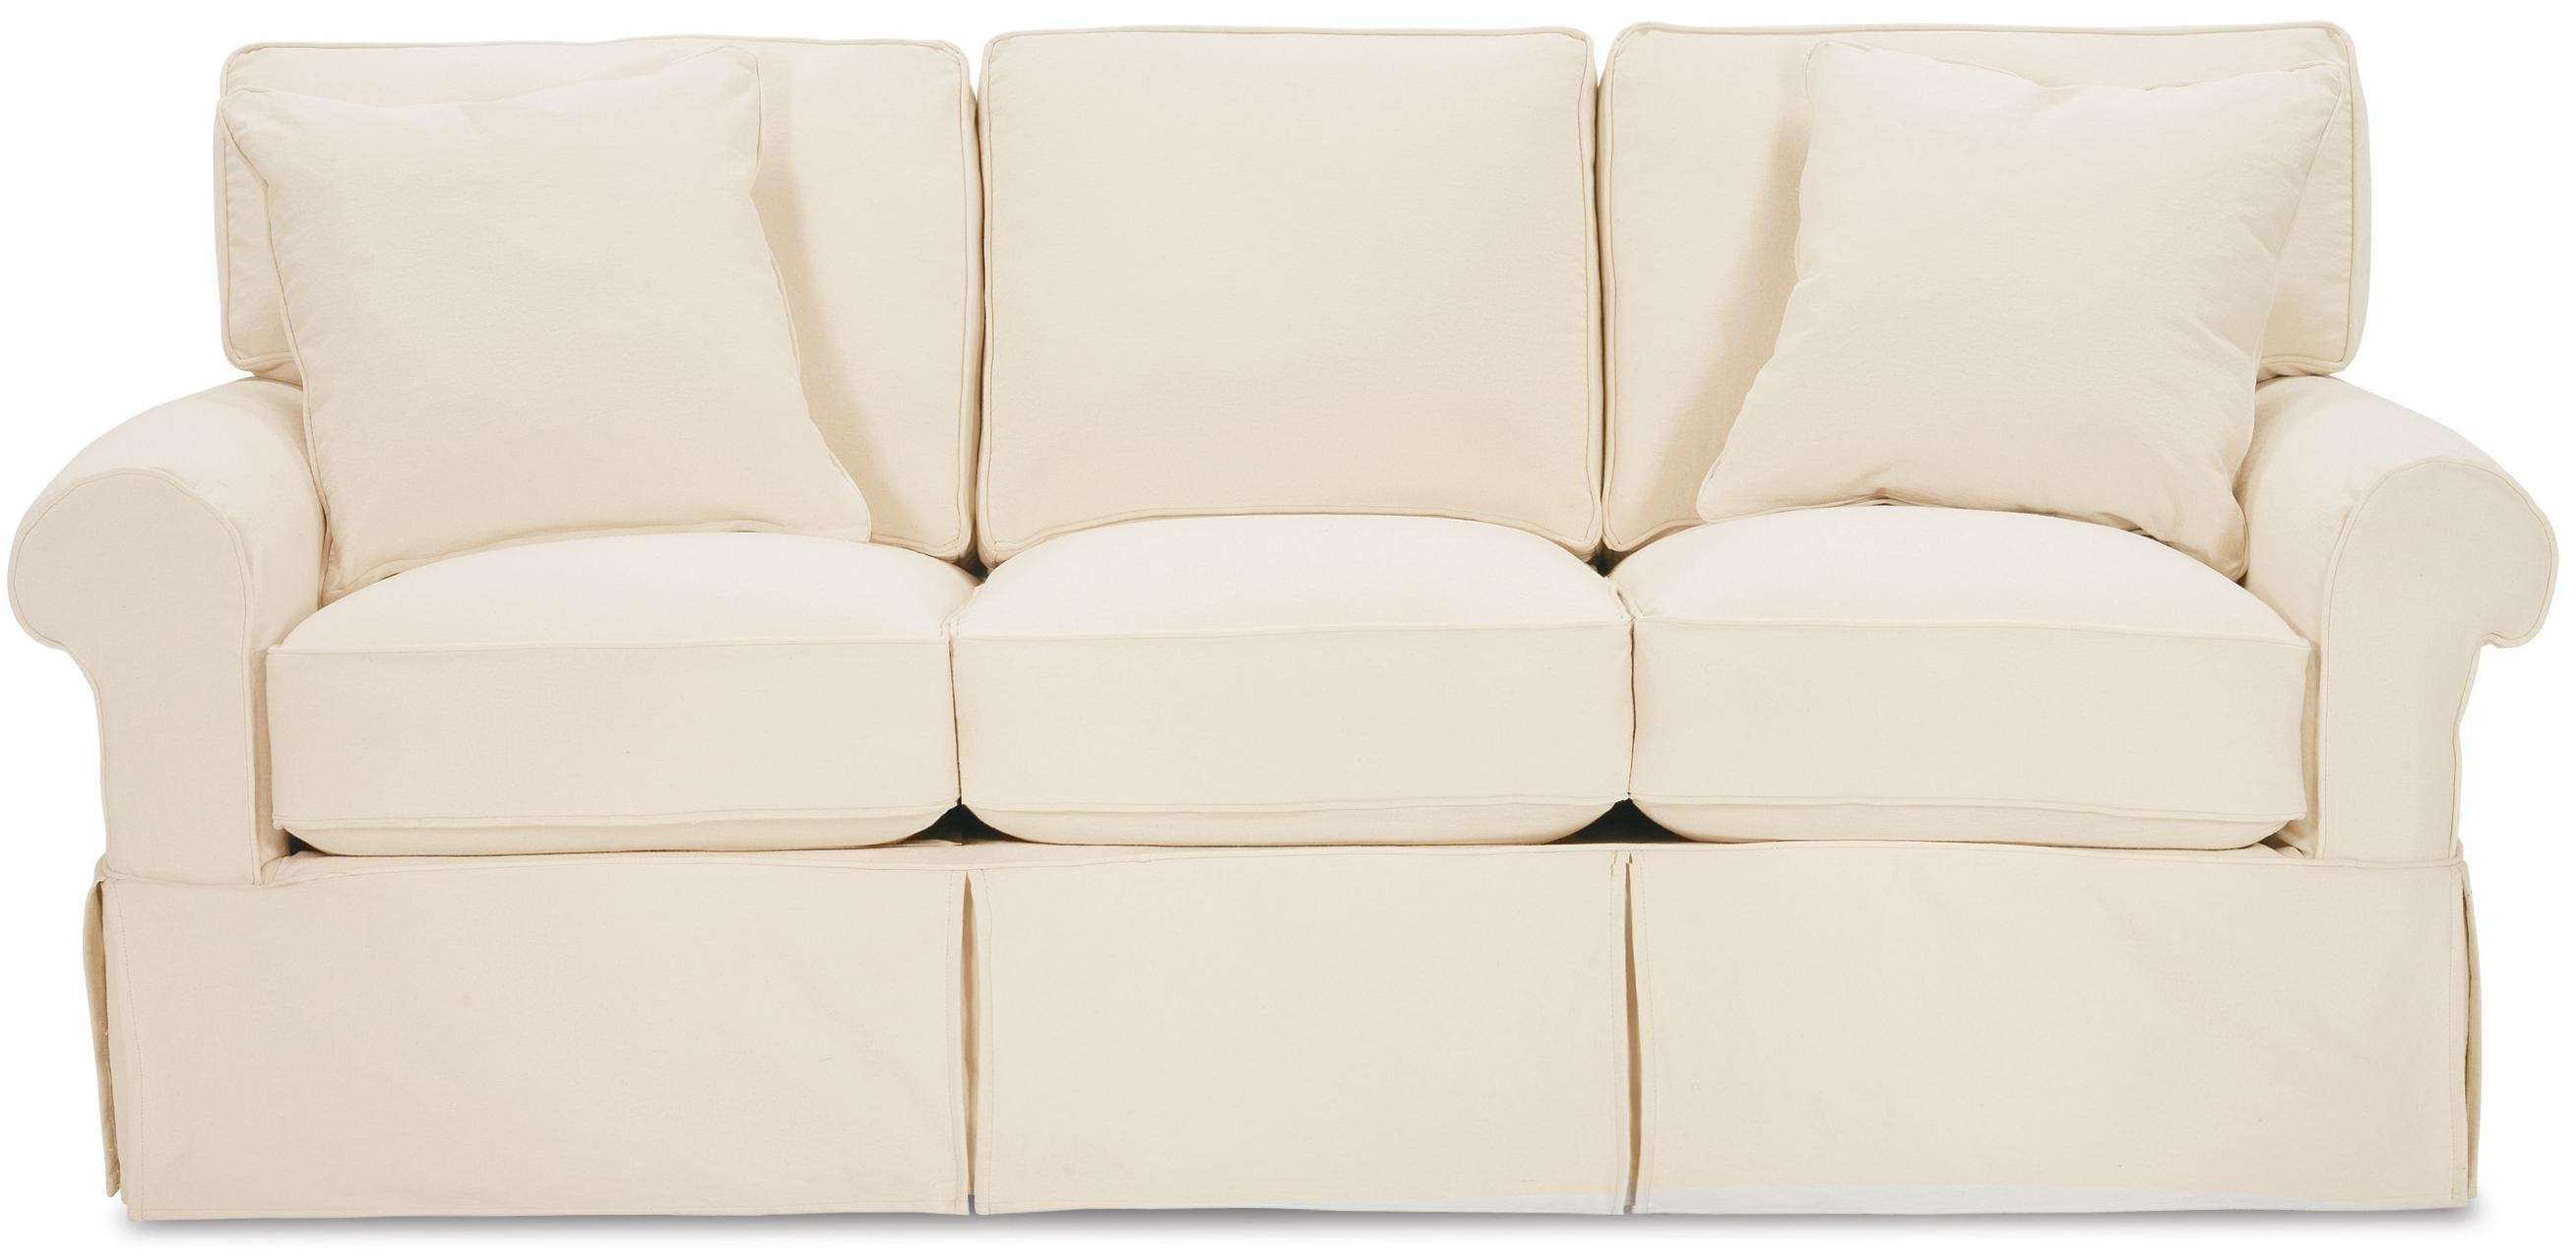 Rowe Nantucket Slip Cover Sofa With Pillows 442072